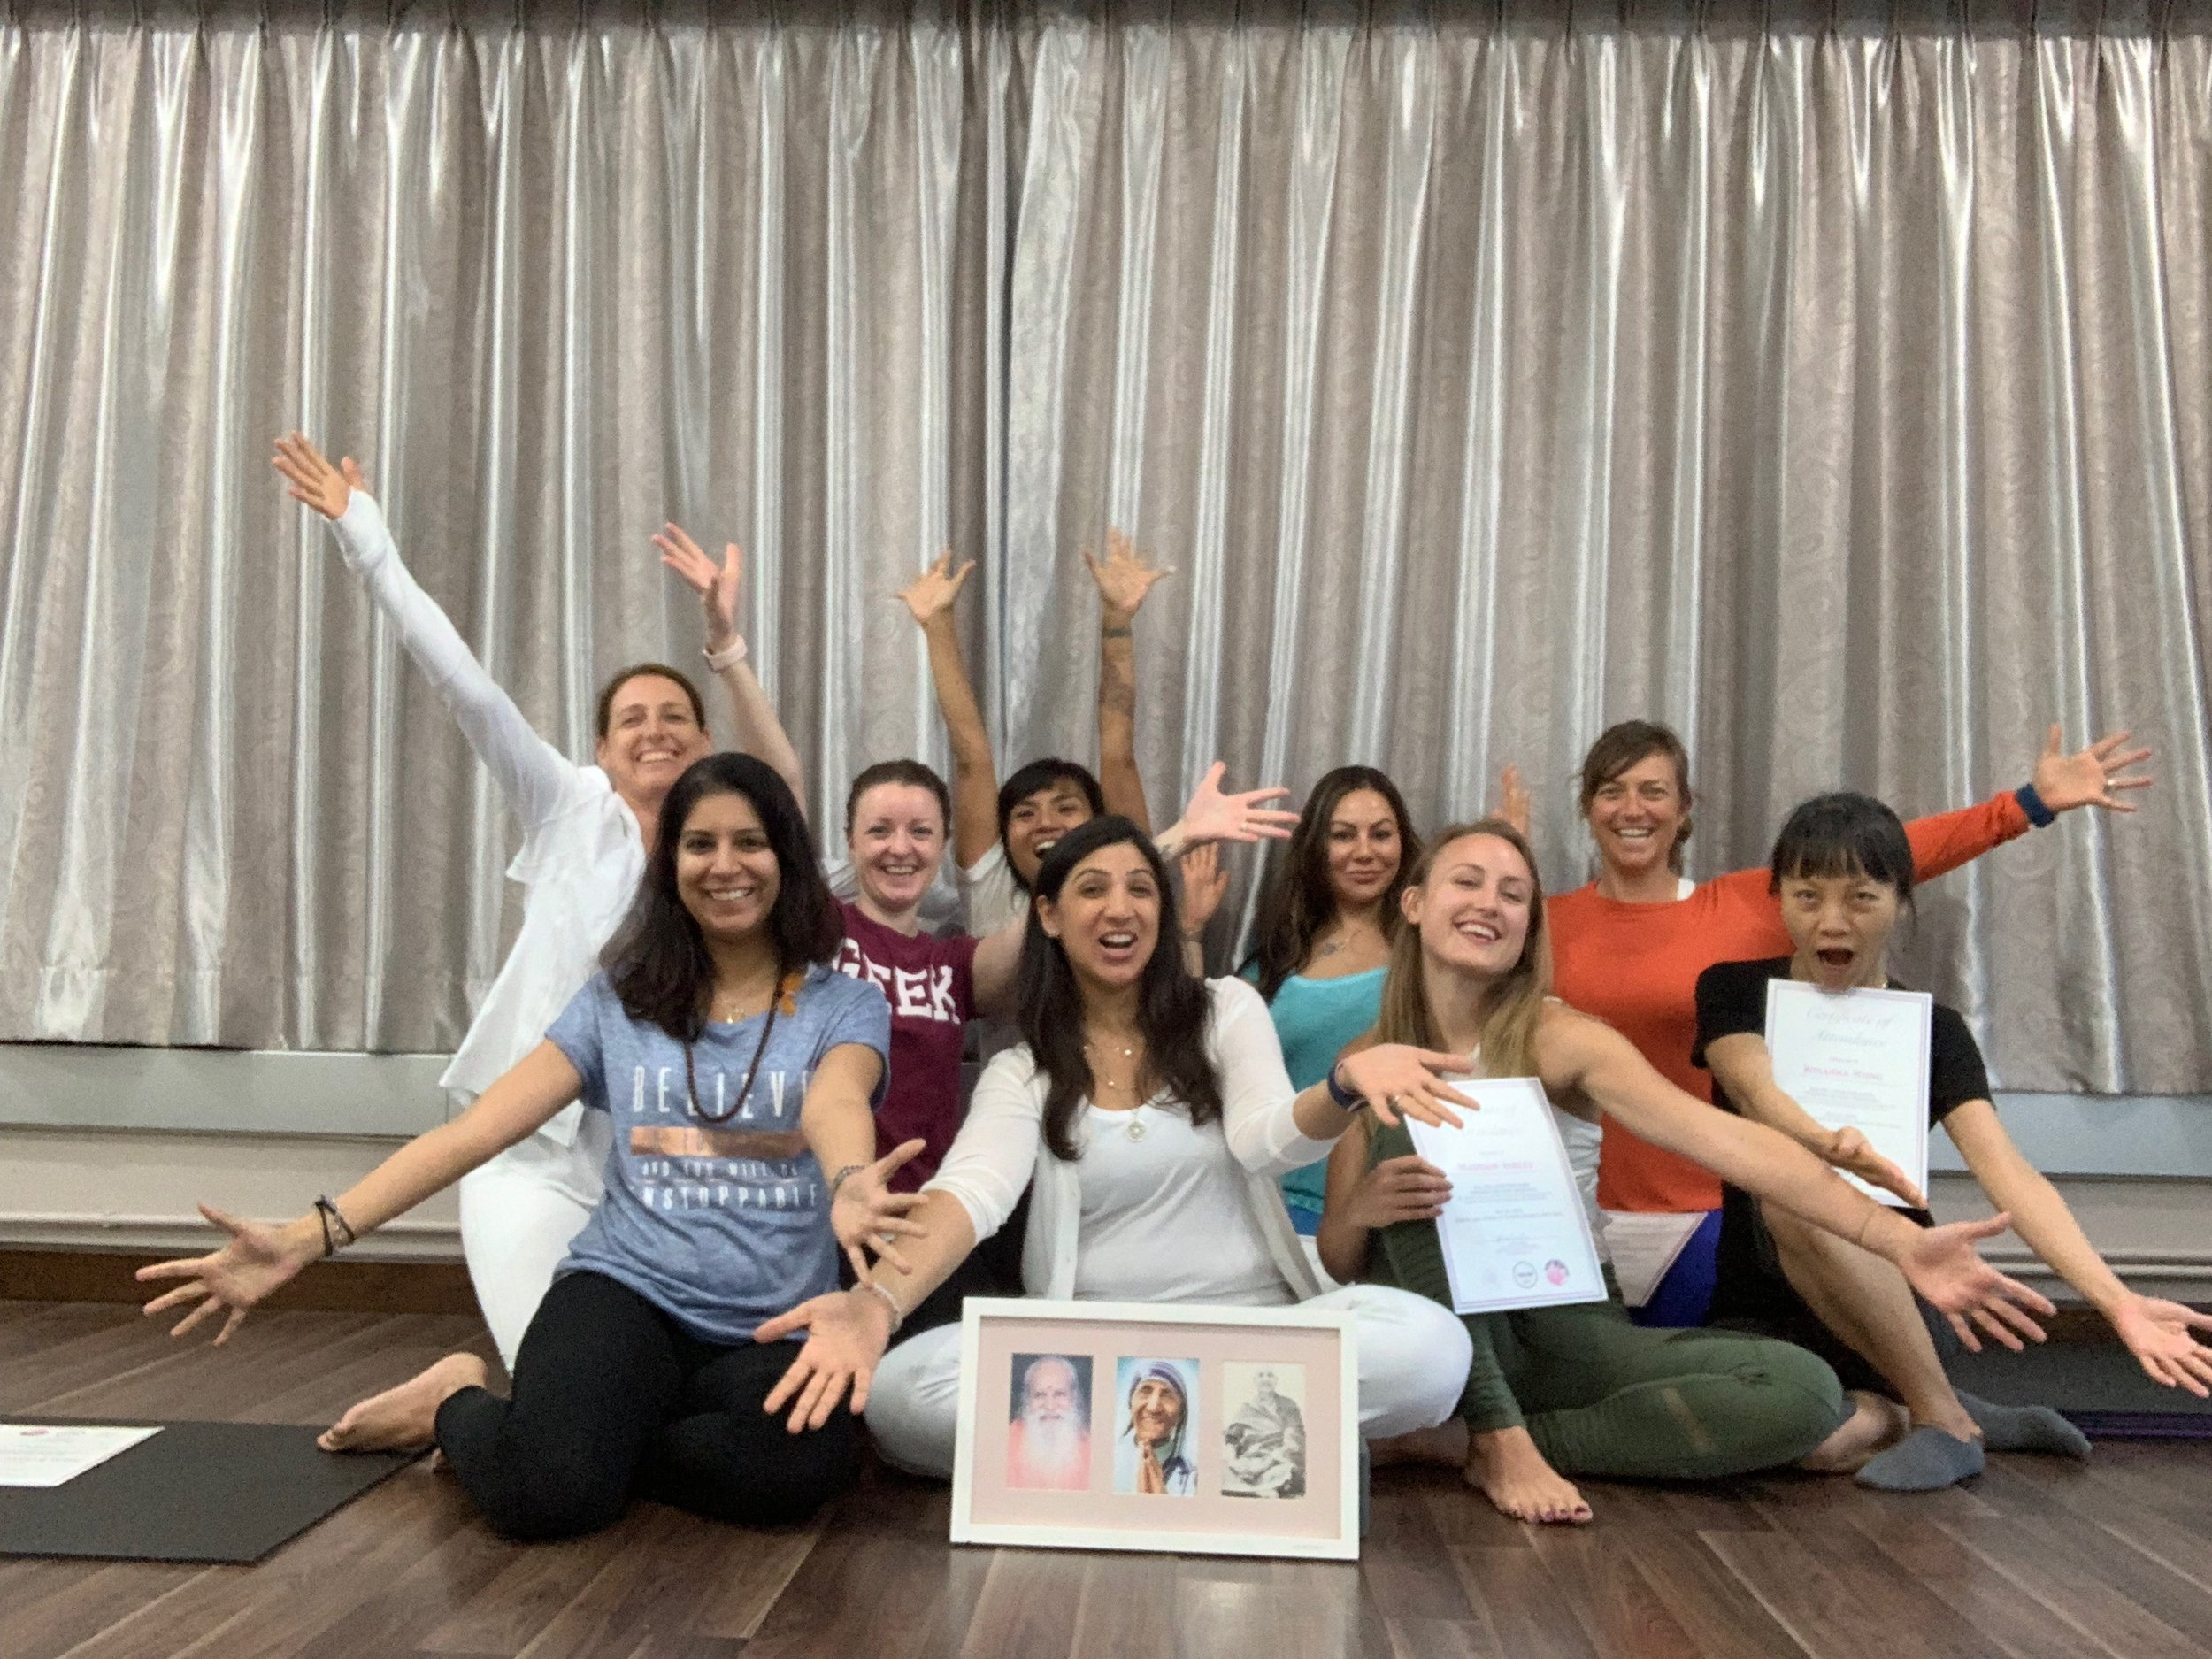 Congrats to the students who completed the Raja Yoga Foundation Course.